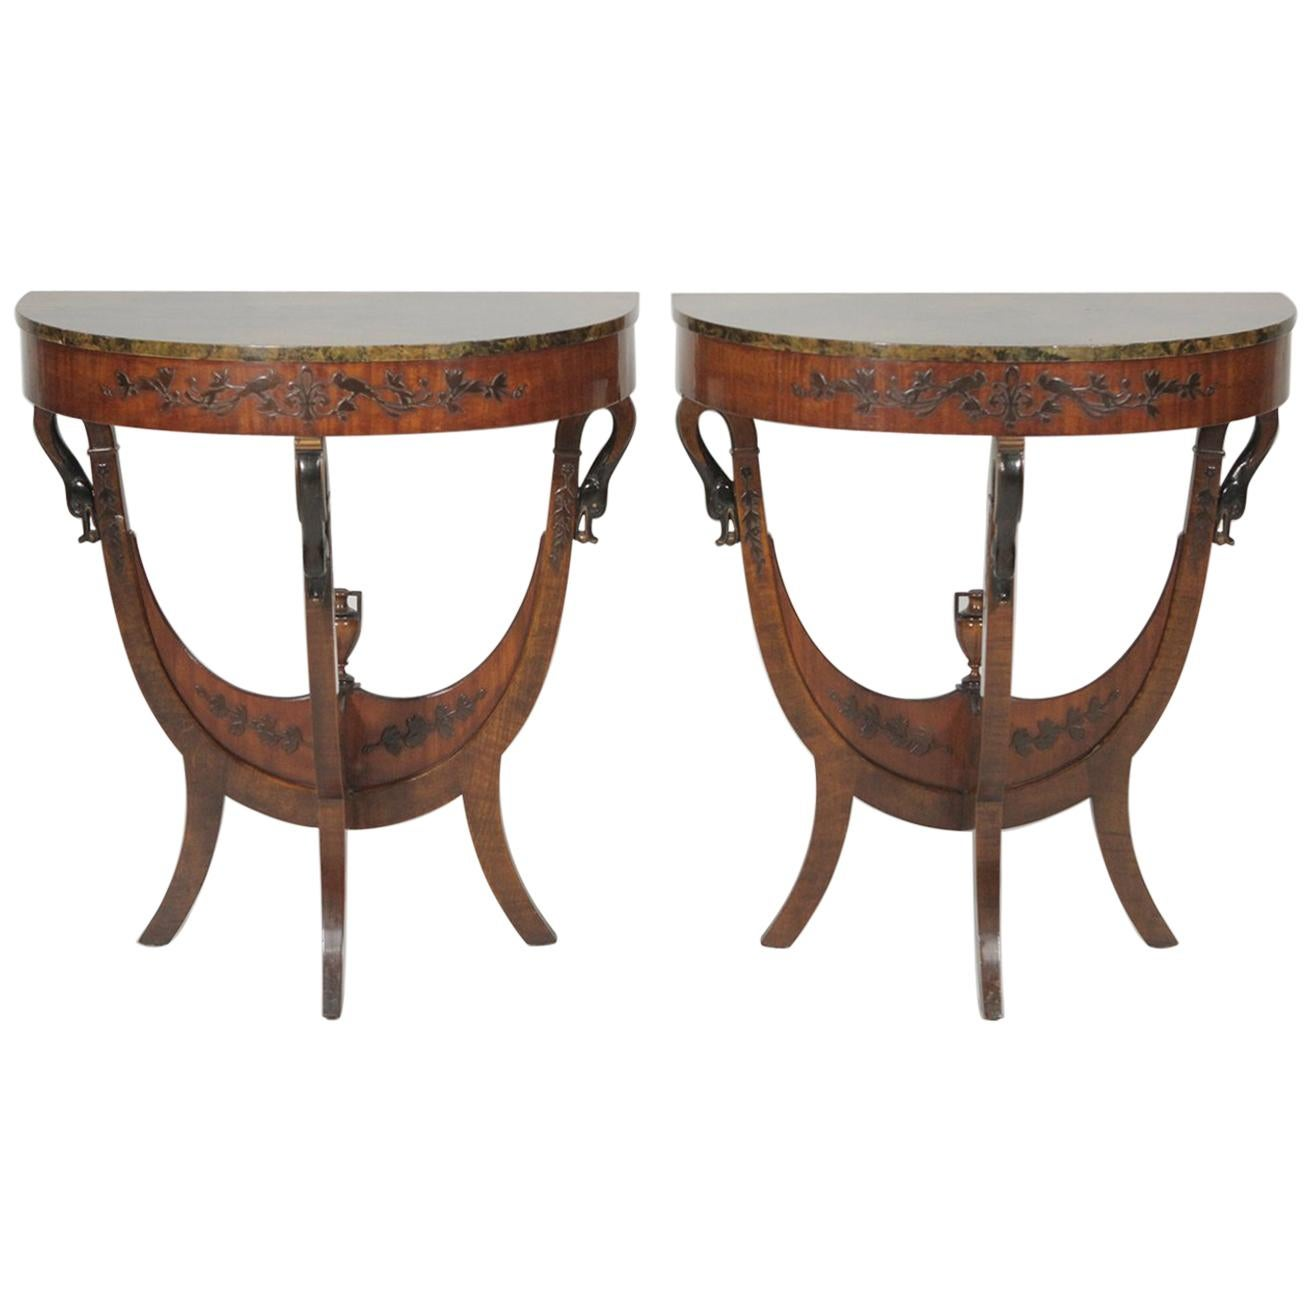 Attirant Pair Of Early 1900s Half Round Tables